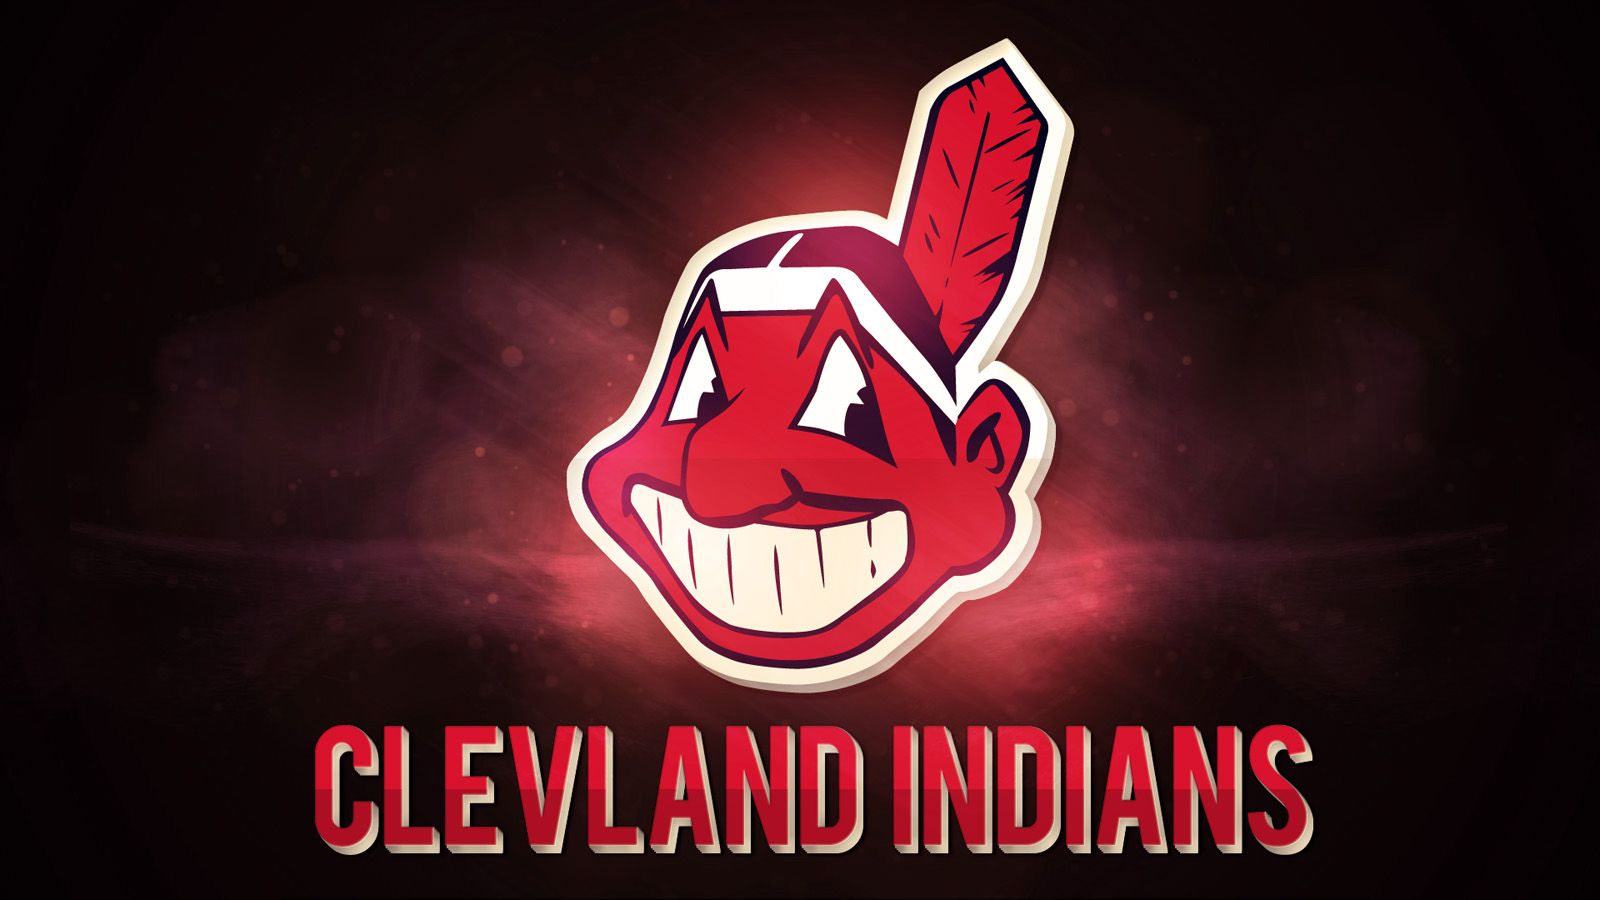 Cleveland Indians Wallpapers Cleveland Indians Background Cleveland Indians Indians Cleveland Indians Baseball